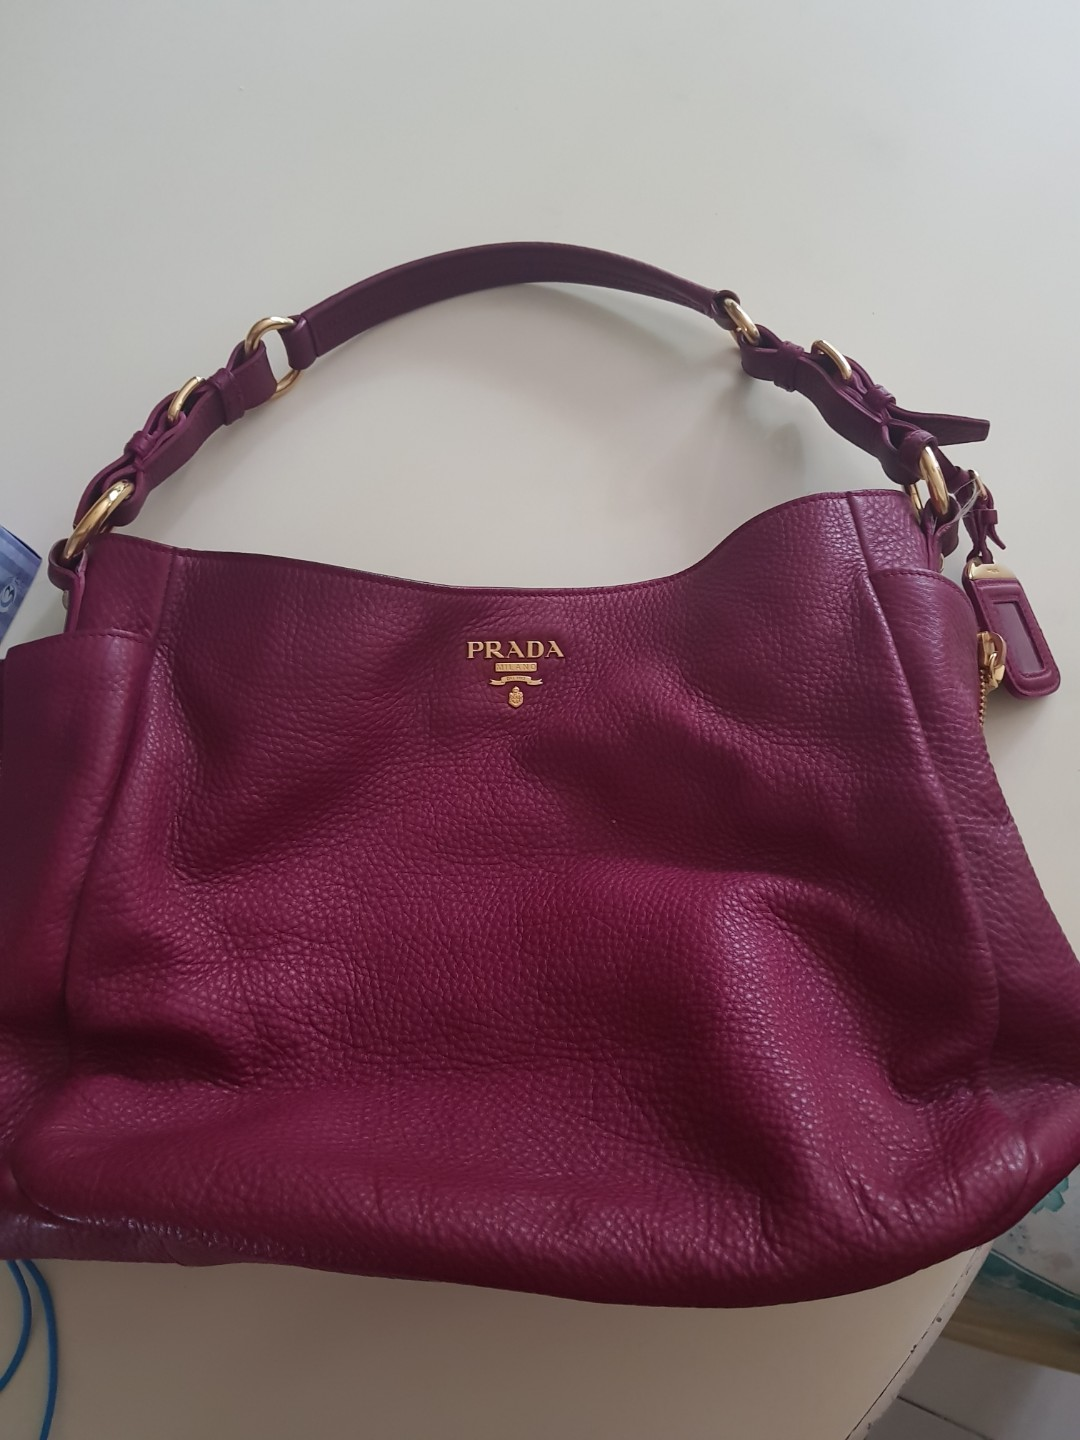 fdcbe7452 Beautiful Prada Bag to let go, Women's Fashion, Bags & Wallets ...